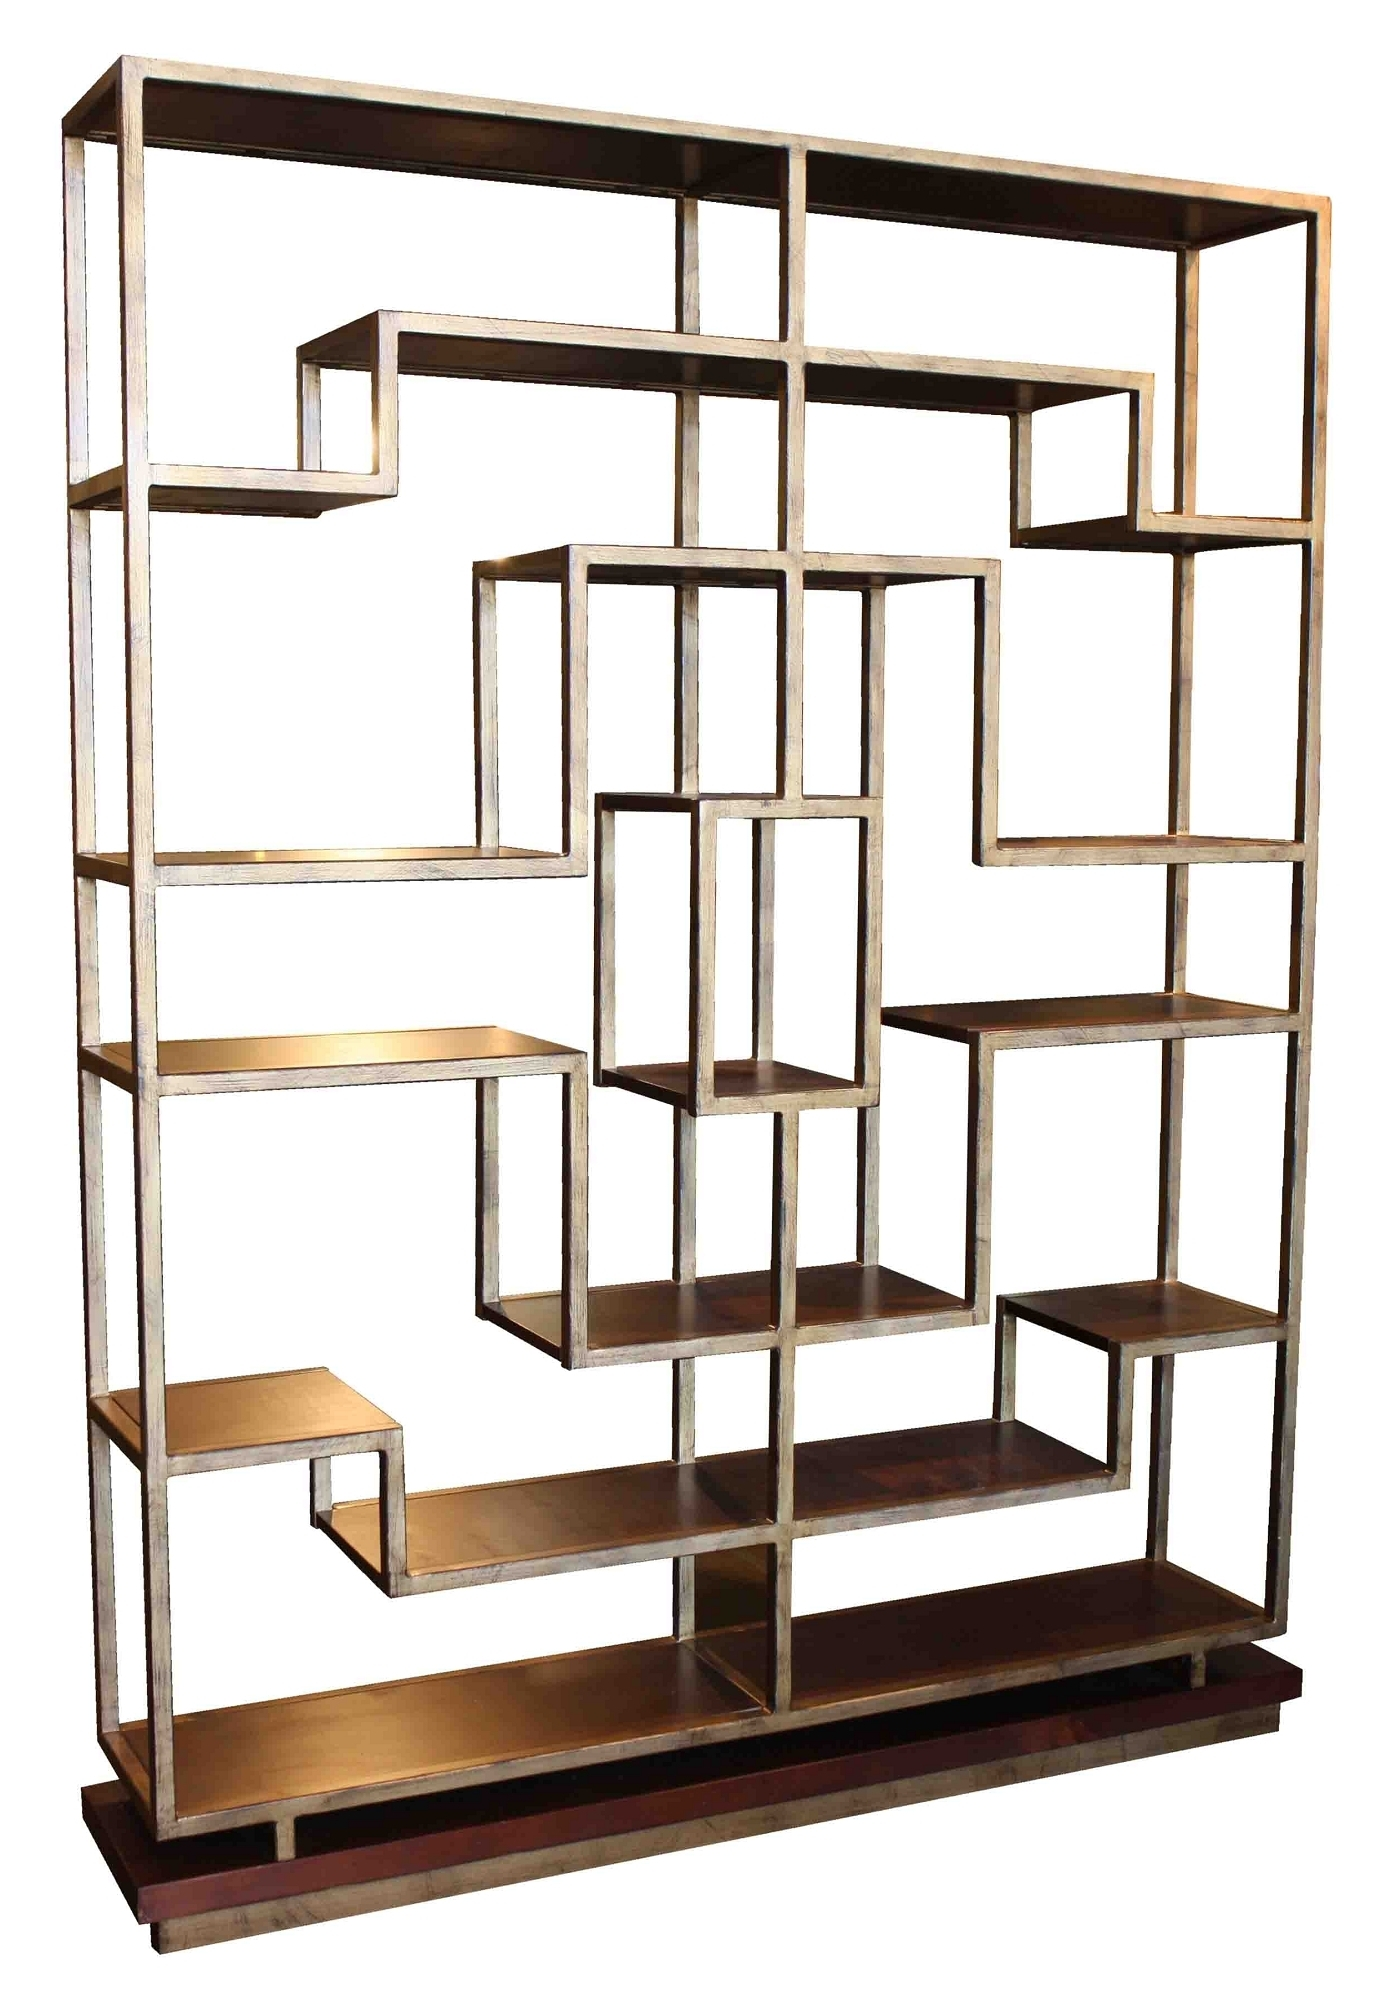 Bookcases Ideas: Bookcases Wood Metal And Glass Crate And Barrel Regarding Favorite Steel Bookcases (View 2 of 15)